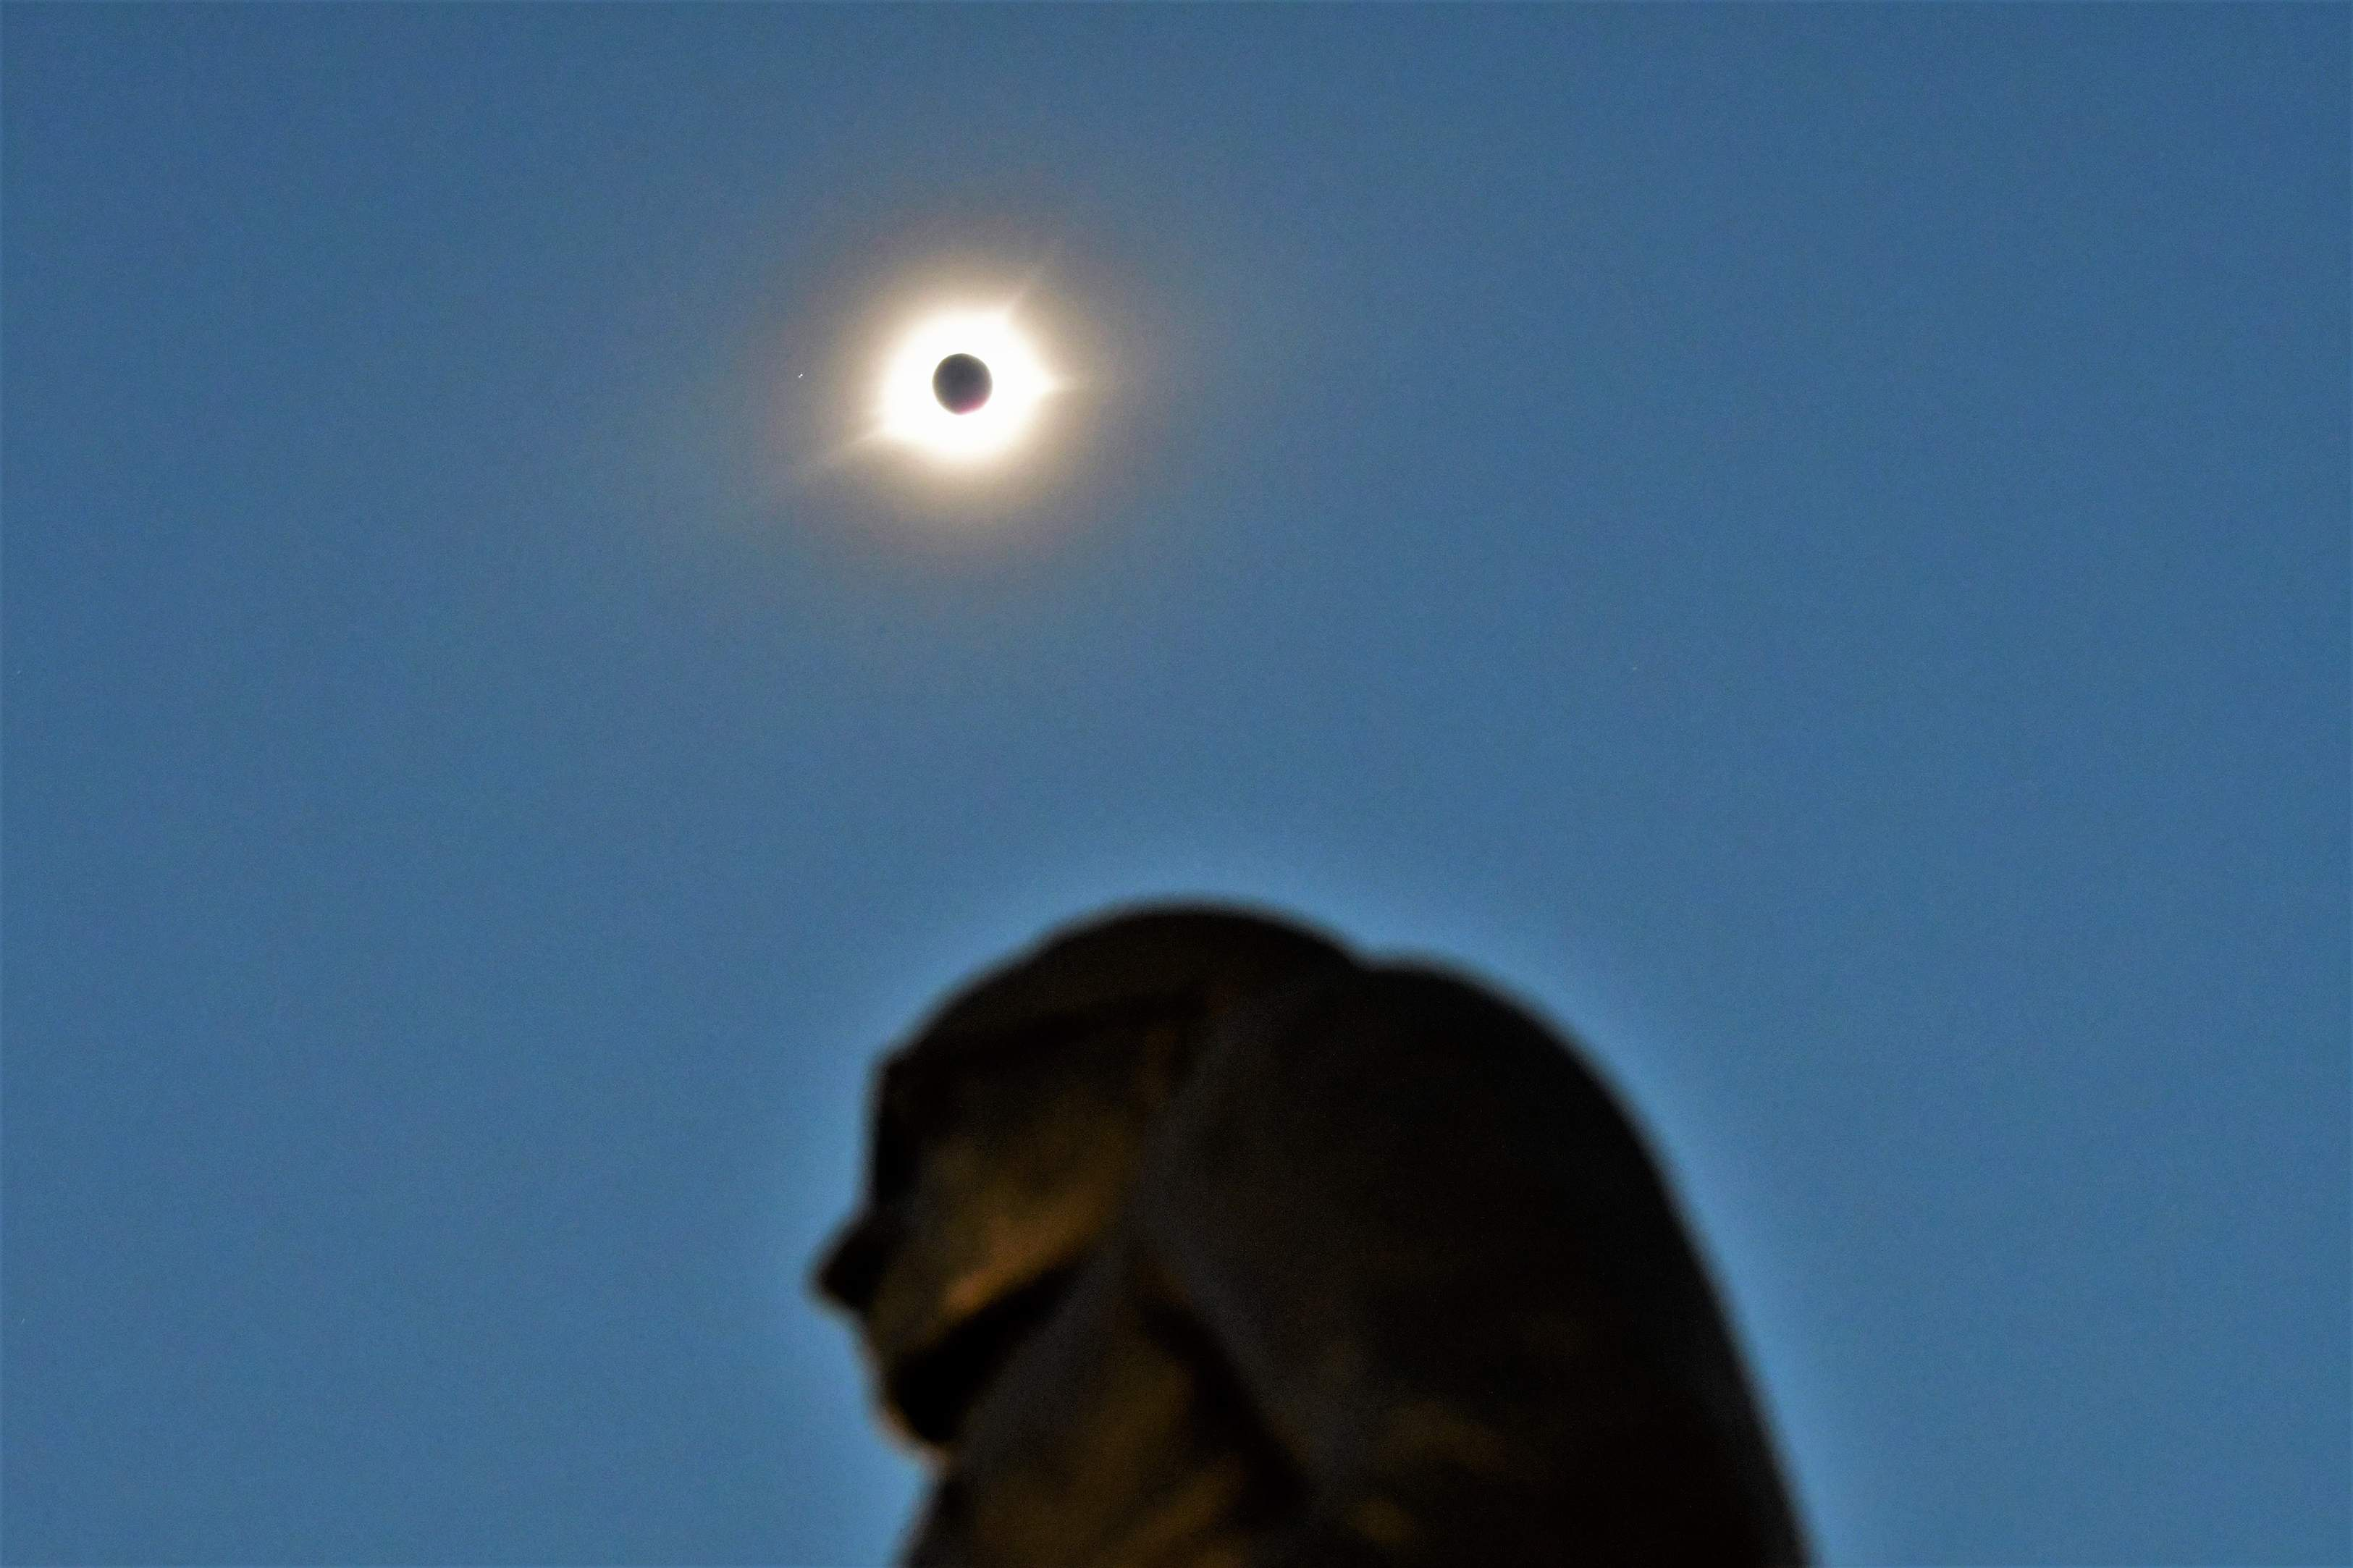 The statue of Harry Truman on Independence Square at the time of the eclipse's totality Monday. [David M. Rainey/Special to The Examiner]